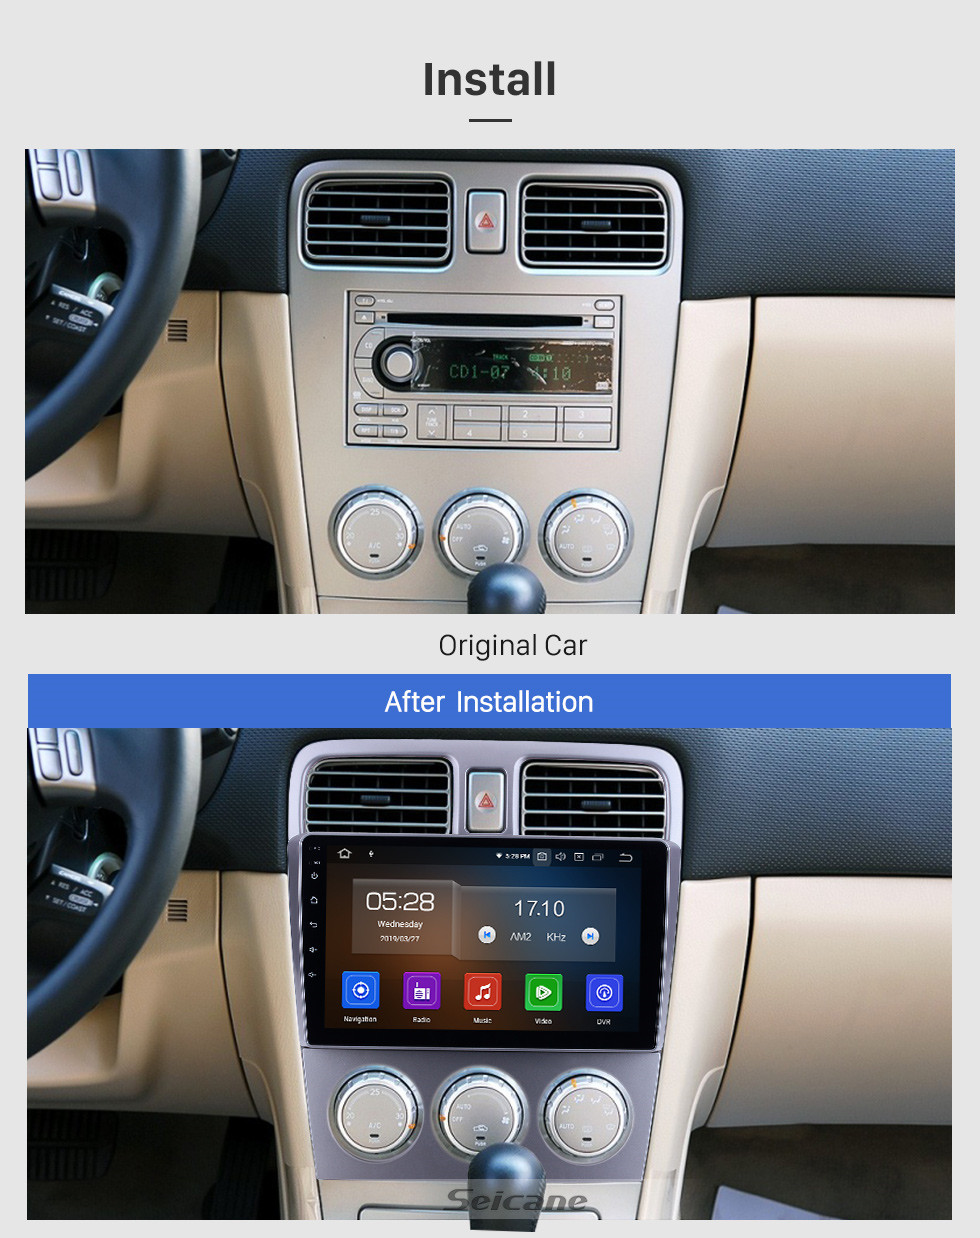 Seicane 9 inch For 2004 2005 2006 2007 2008 Subaru Forester Radio Android 9.0 GPS Navigation System Bluetooth HD Touchscreen Carplay support TPMS